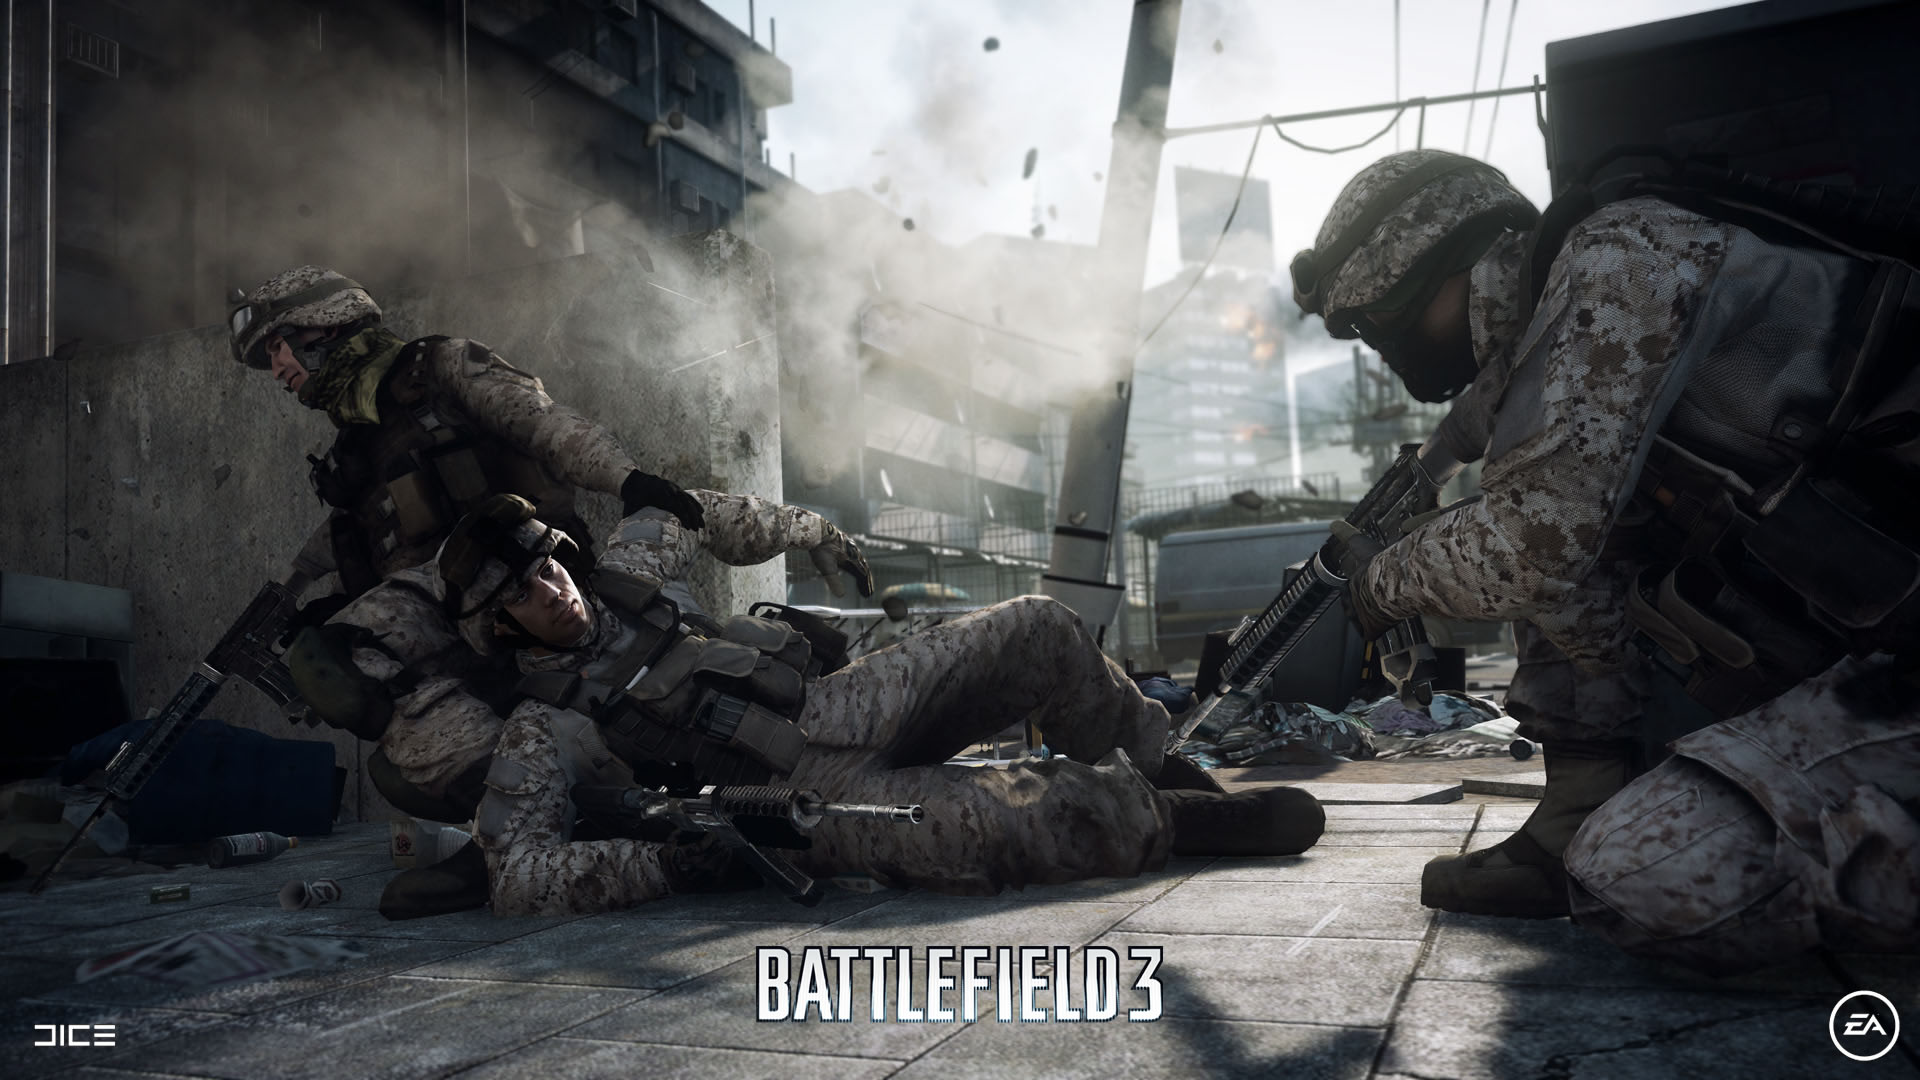 Battlefield 3 wallpaper 2